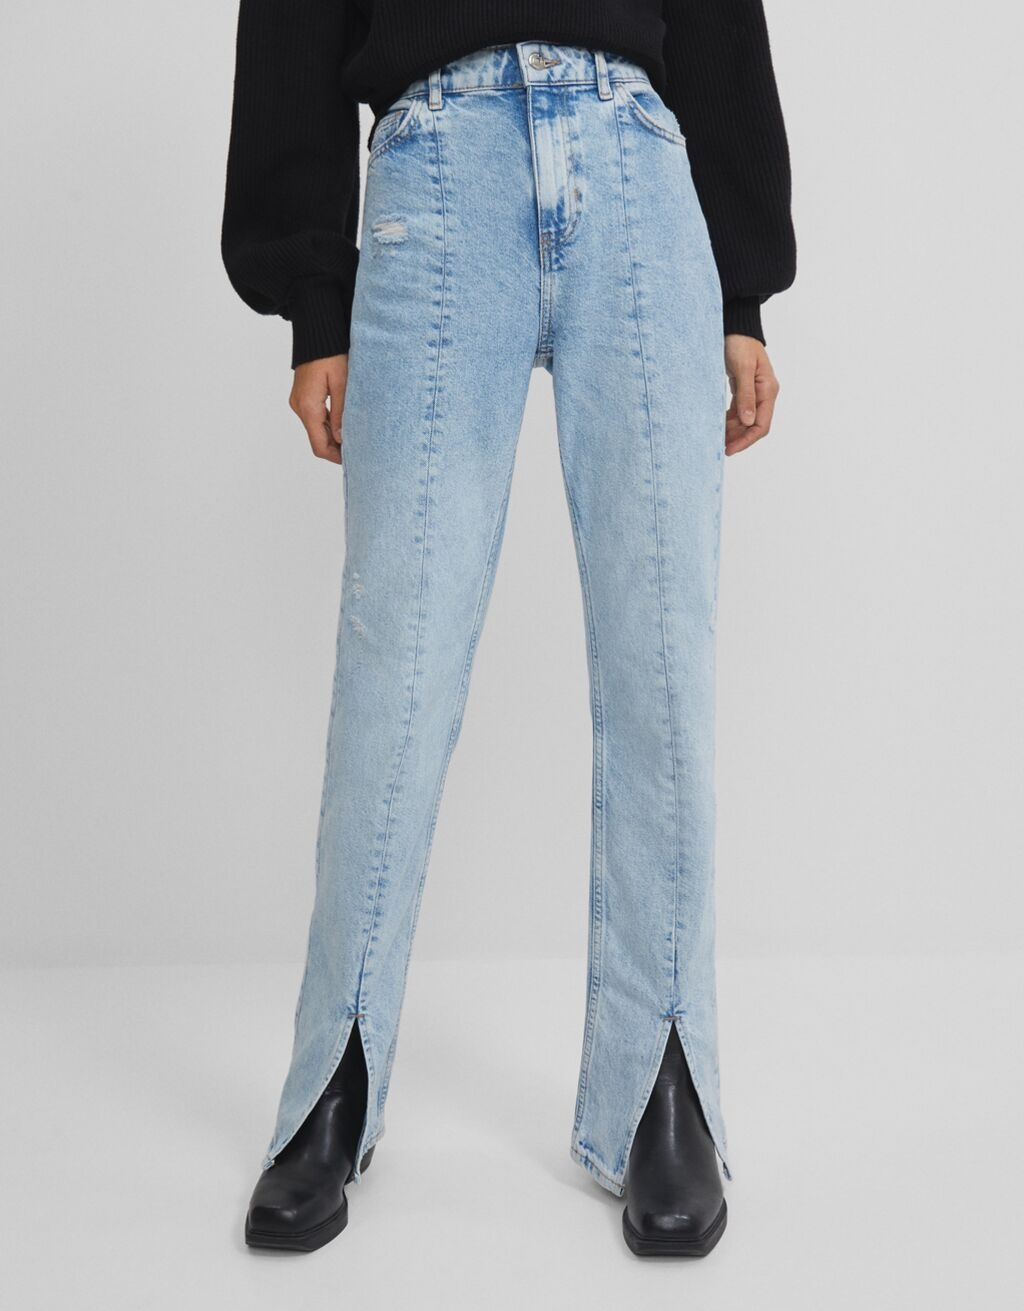 Jeans with vented hems